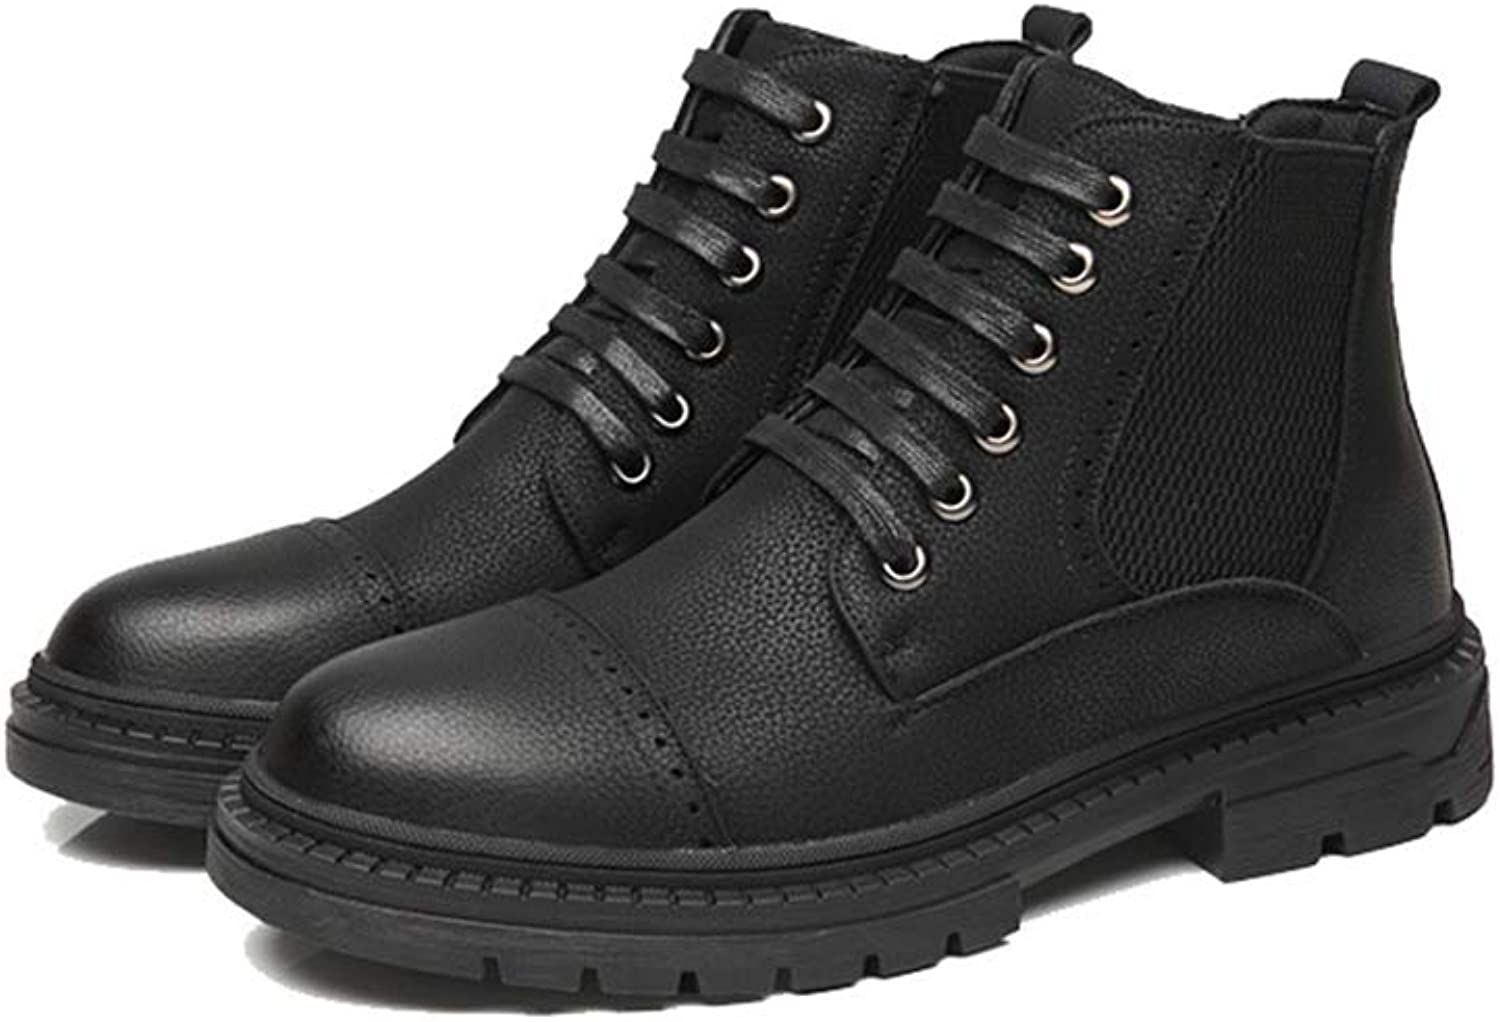 Men's Ankle Boots Casual Comfortable High Top Flat Heel Classic Leisure Boots